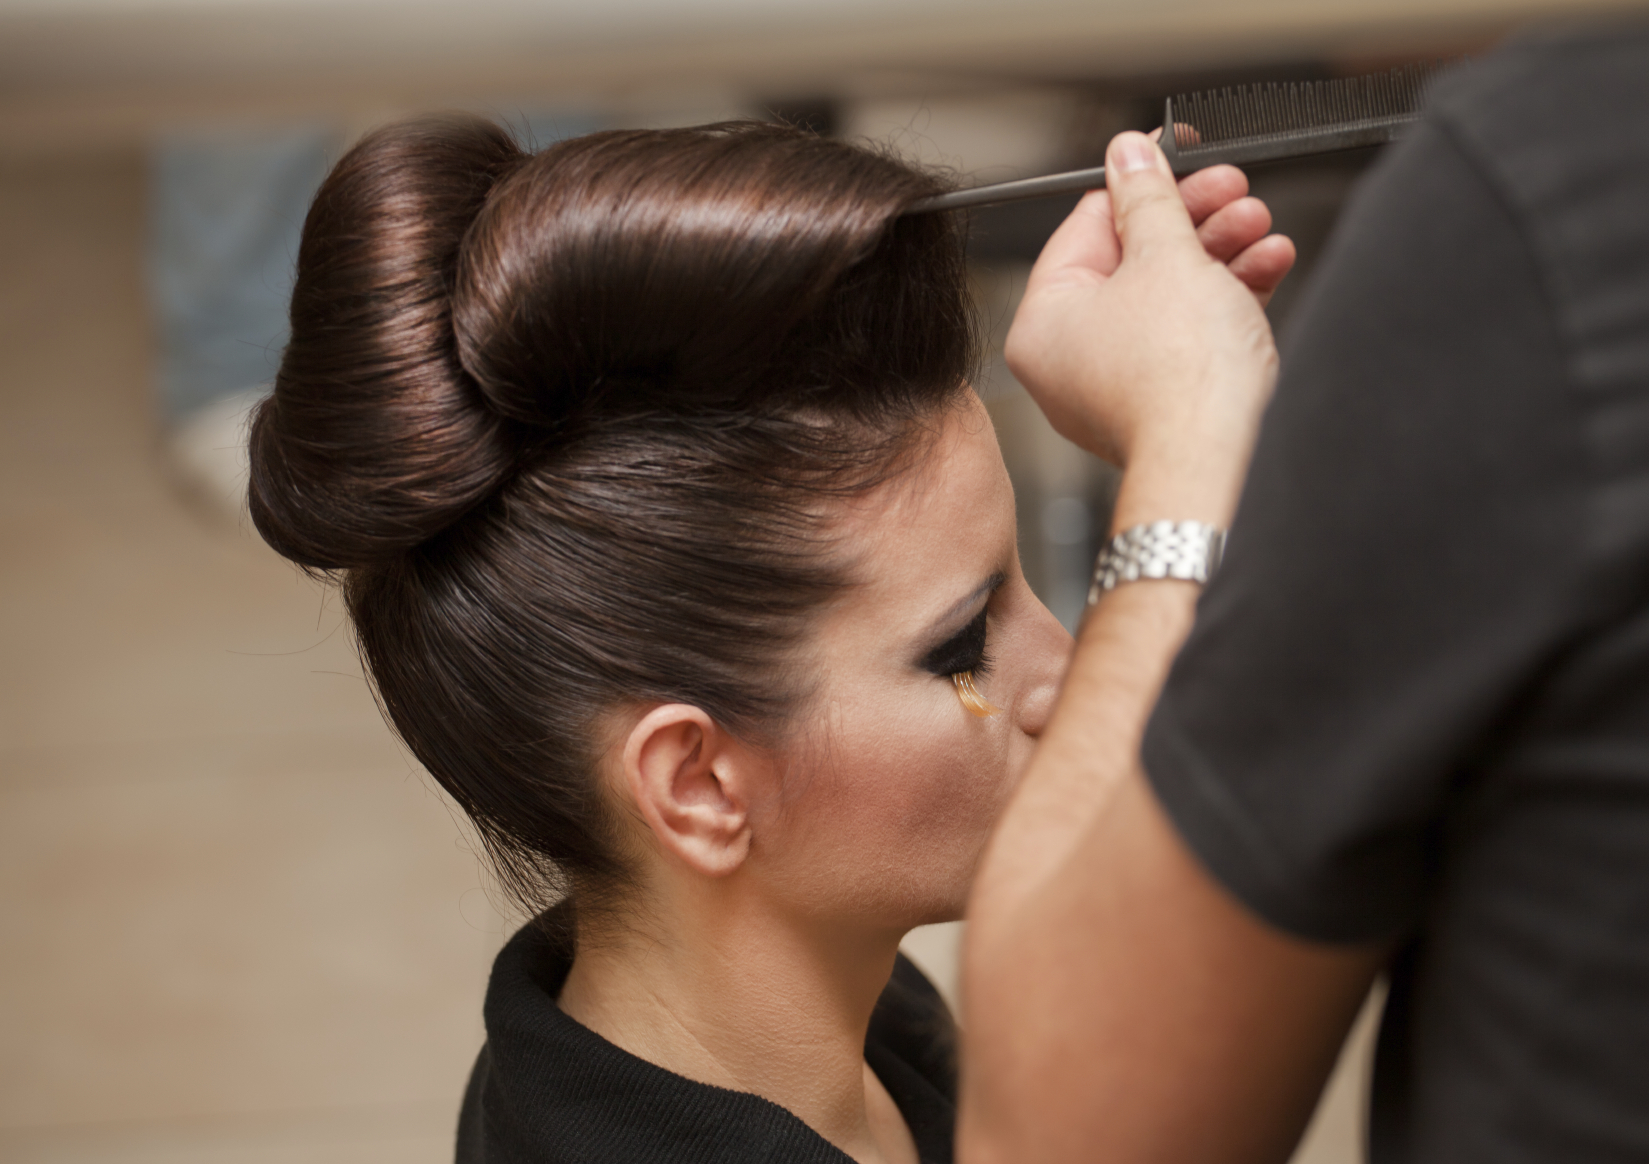 hair styling training courses custom hair styling course and classes